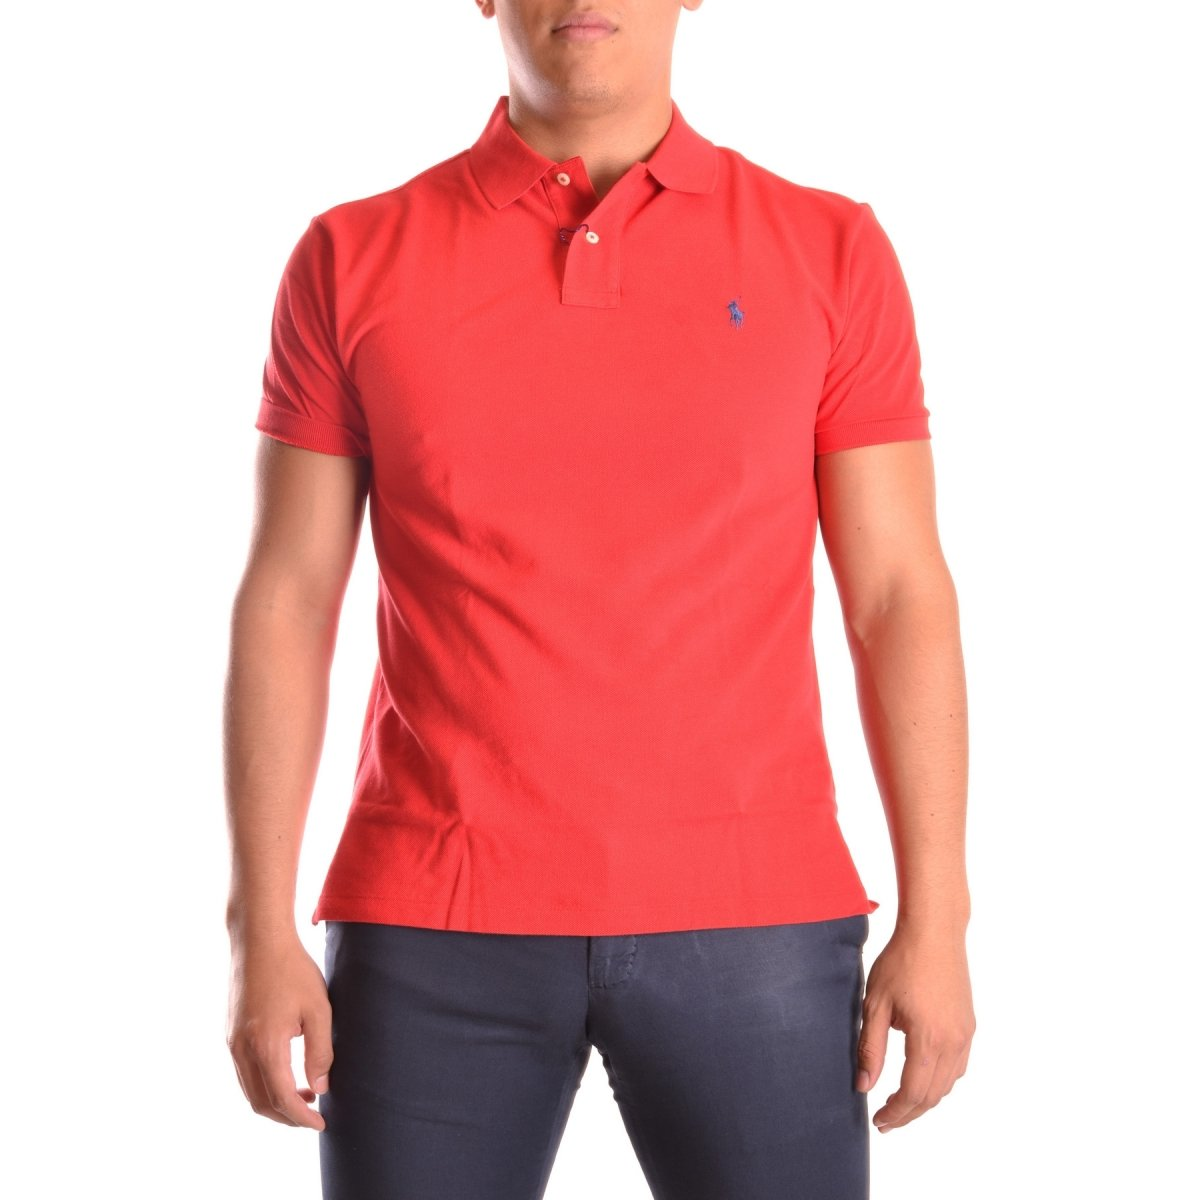 Rouge L Polo Ralph Lauren SS KC Slim Fit Polo Ppc Homme